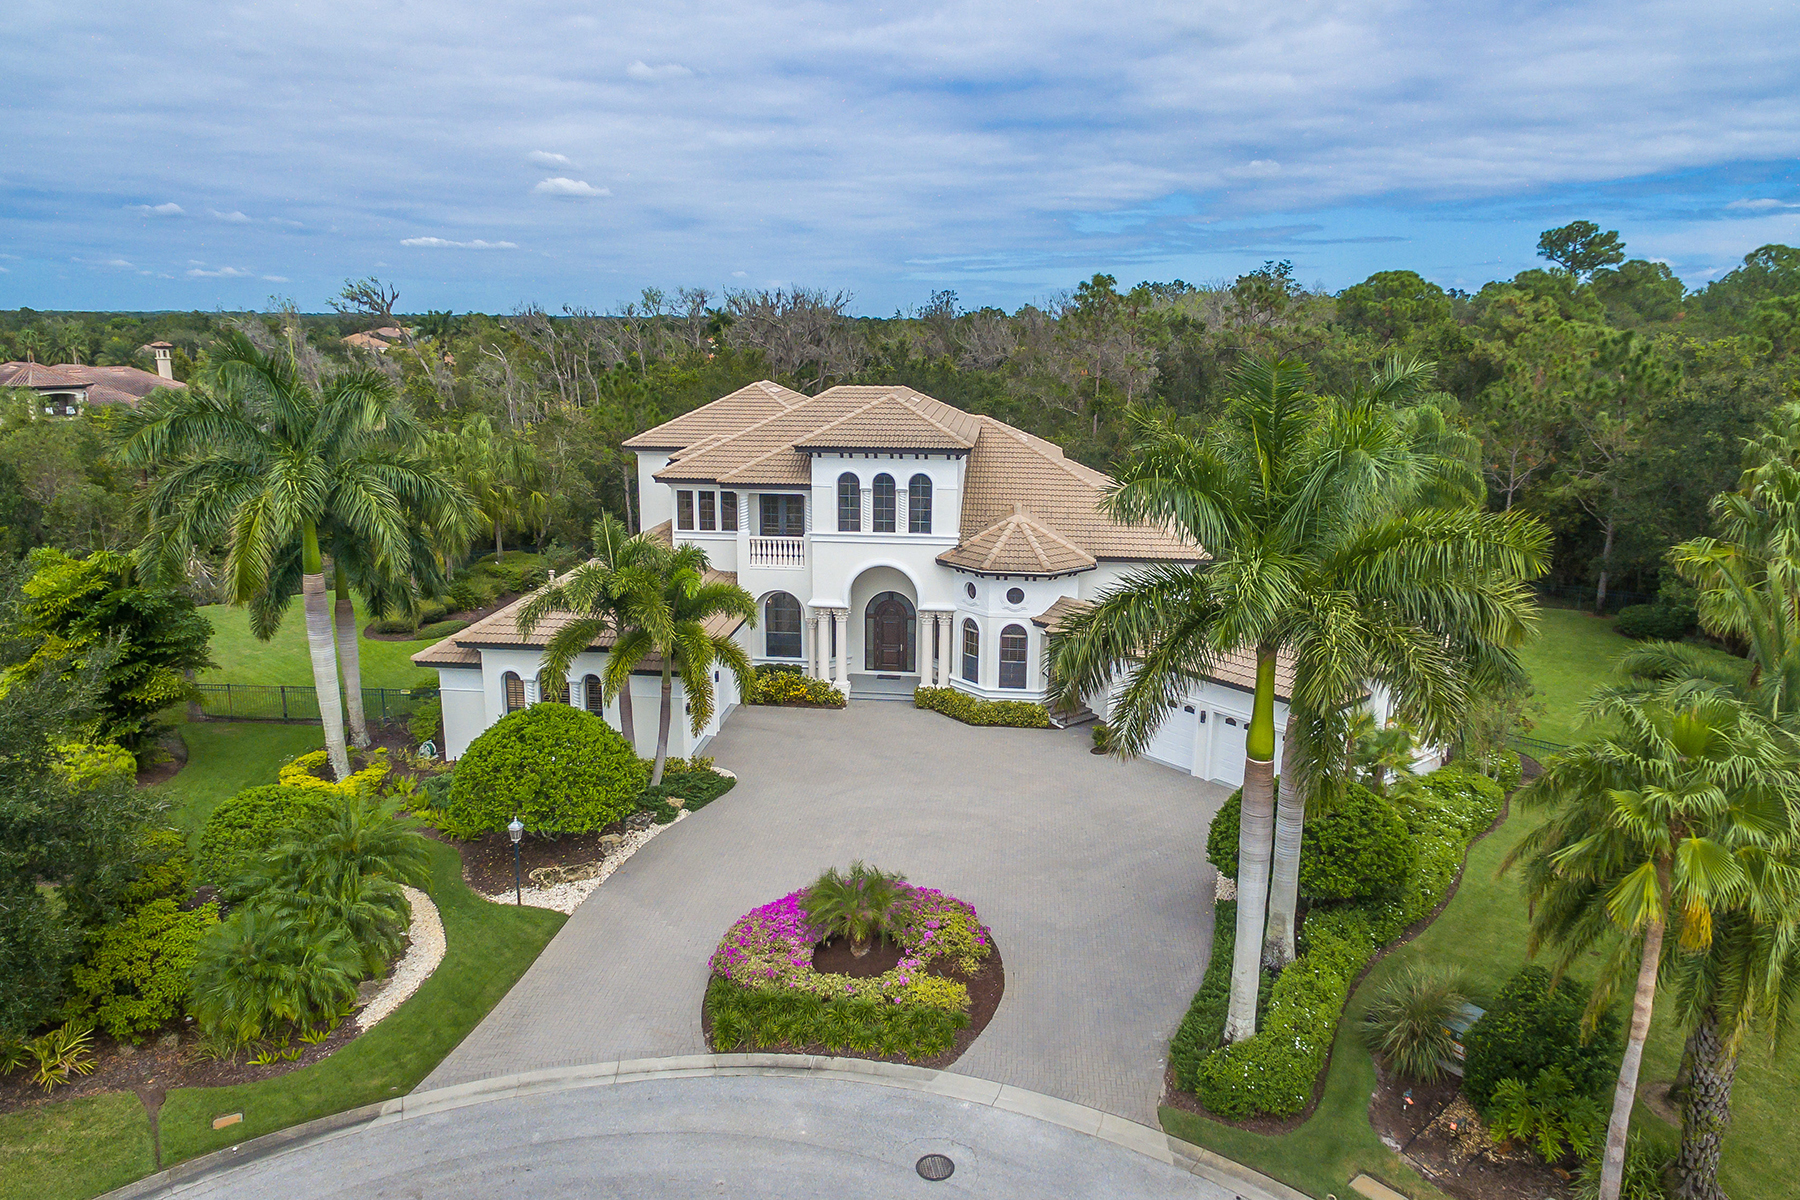 Additional photo for property listing at LAKEWOOD RANCH COUNTRY CLUB 13206  Palmers Creek Terr,  Lakewood Ranch, Florida 34202 United States